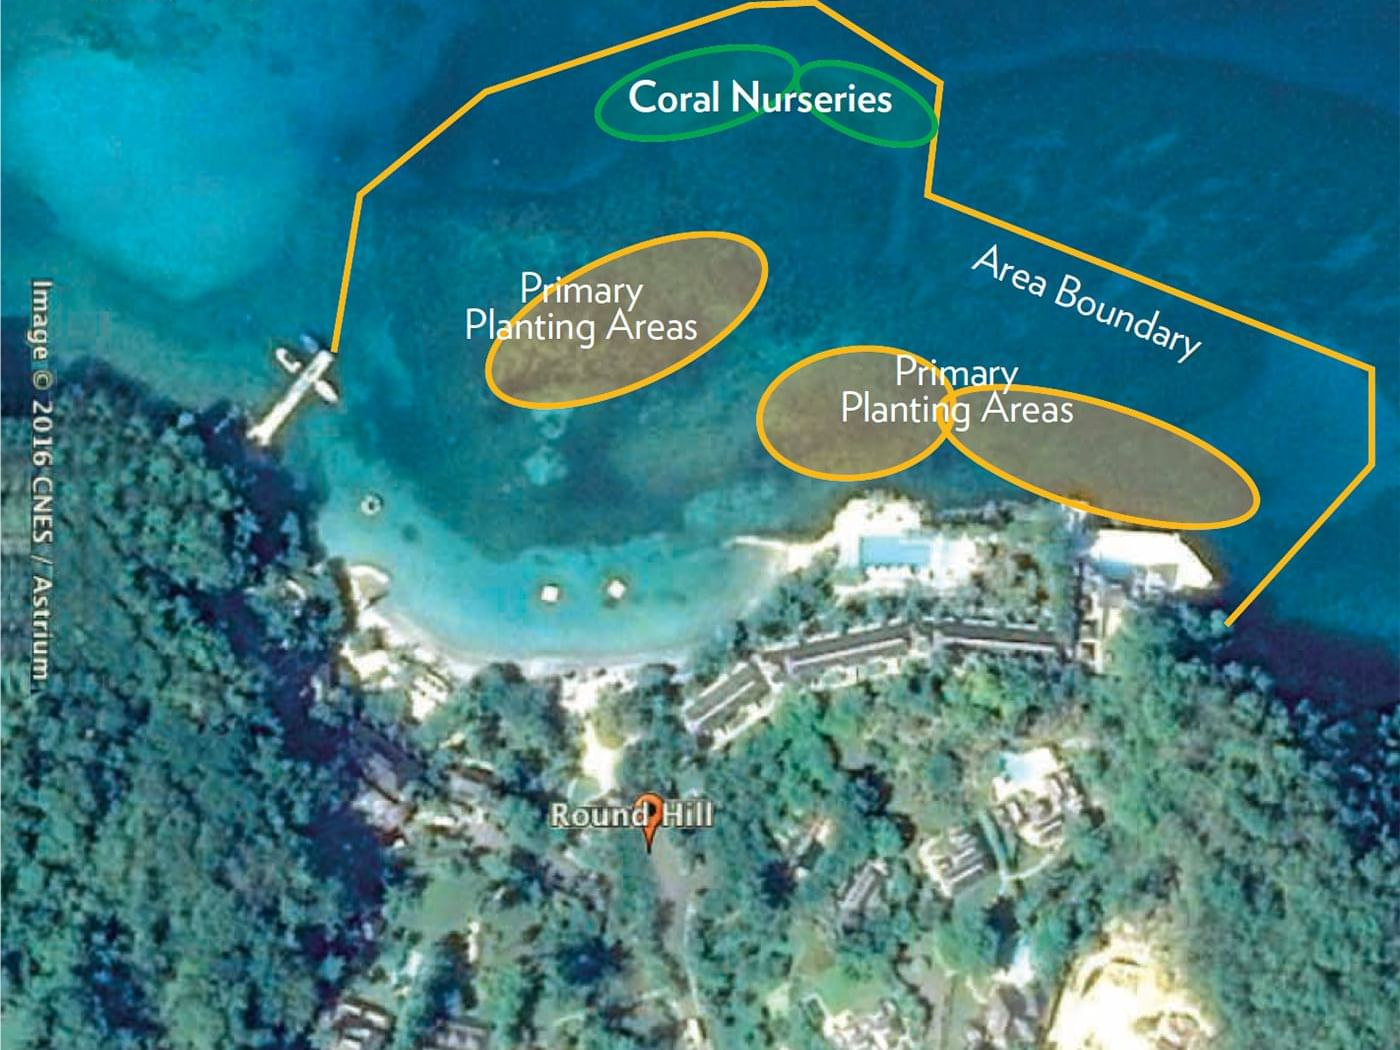 Aerial view of the Round Hill Reef Gardens in the beach